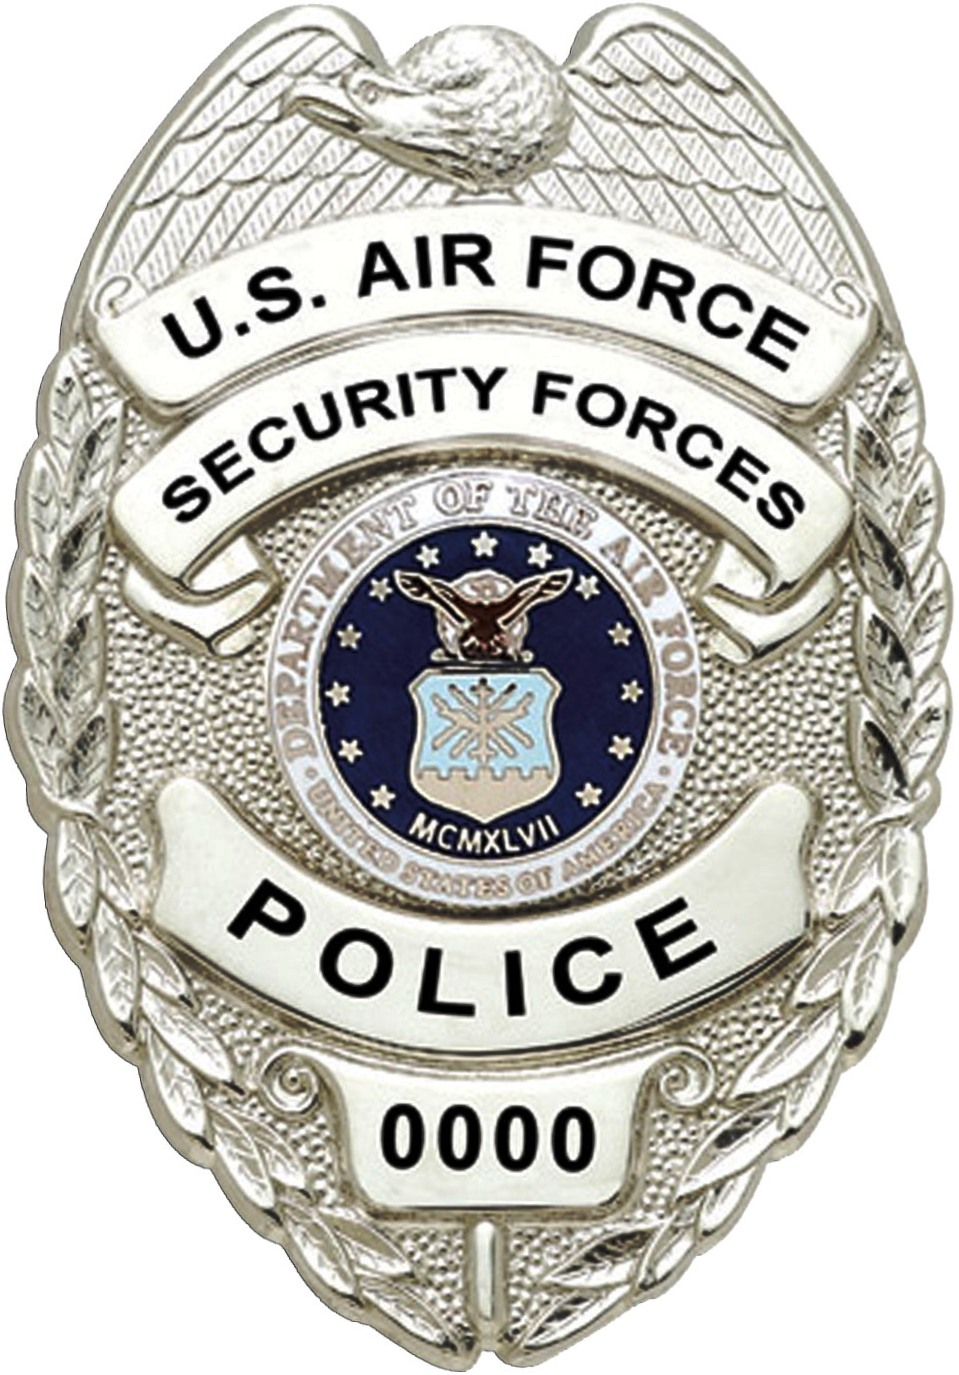 Department of the Air Force Police - Wikipedia